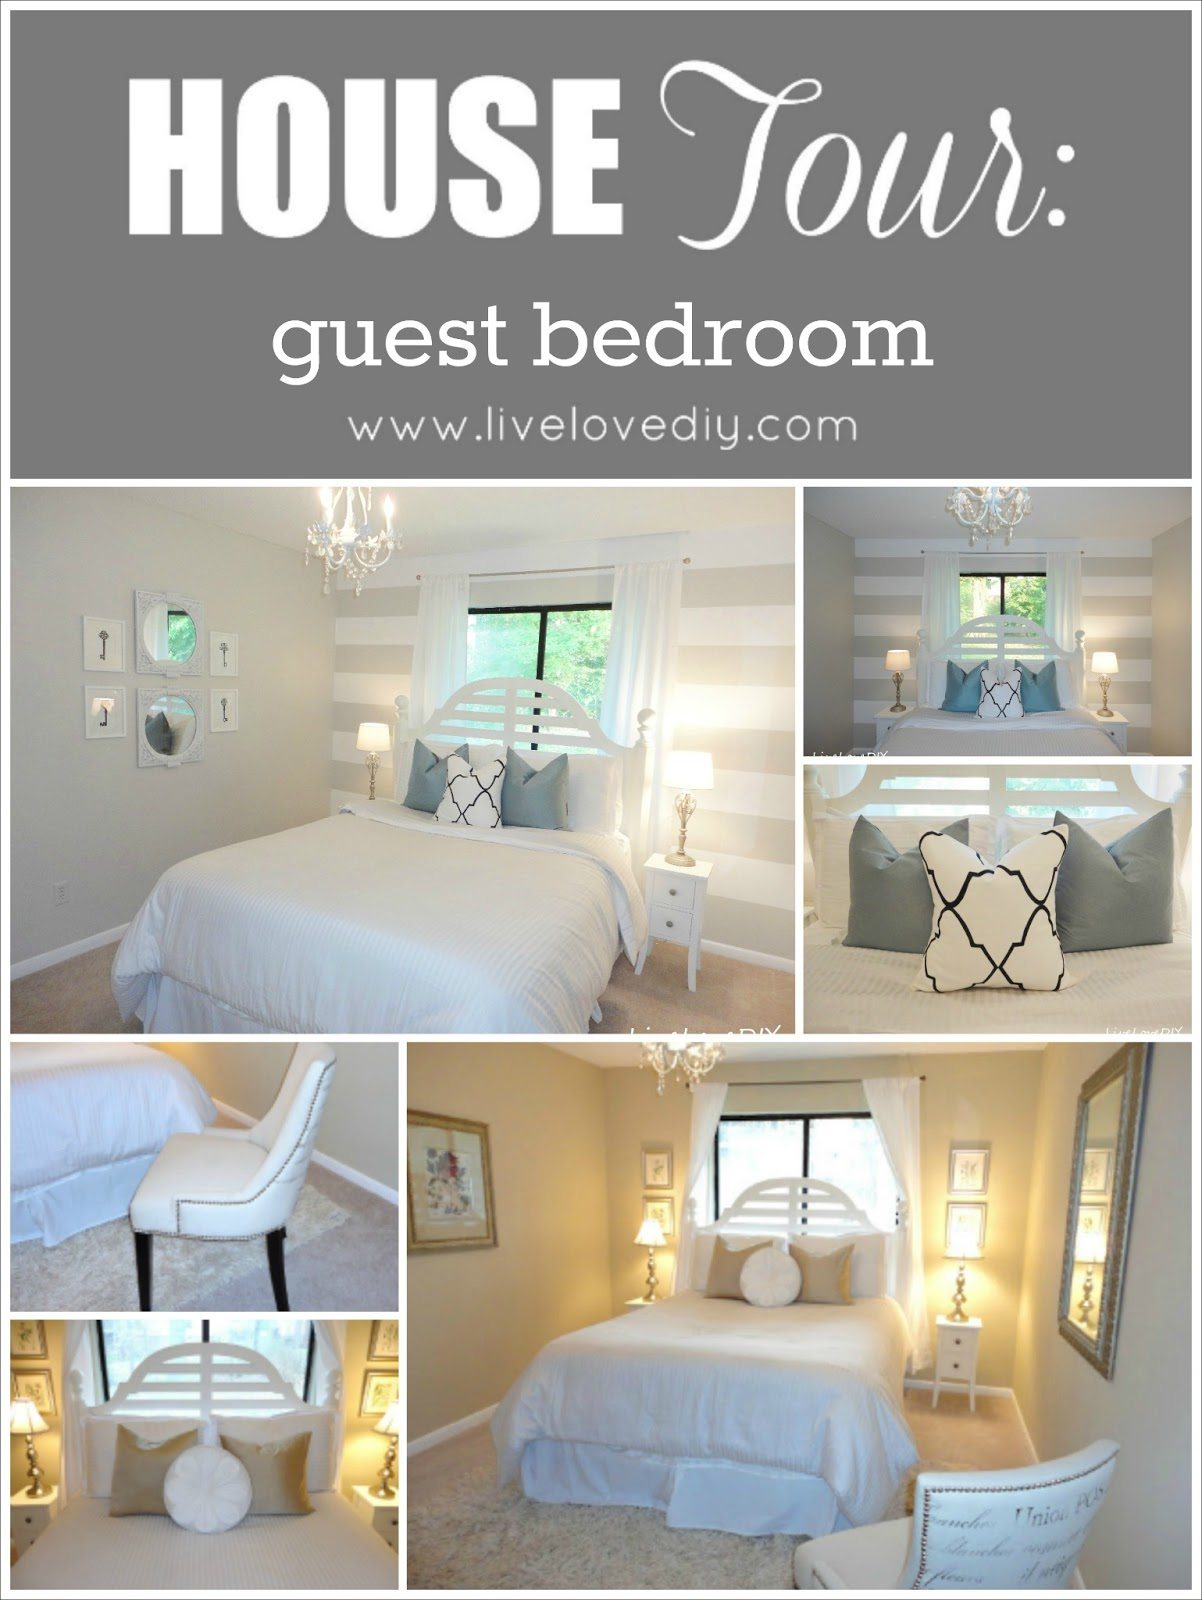 Guest bedroom ideas budget - Post About The Guest Bedroom